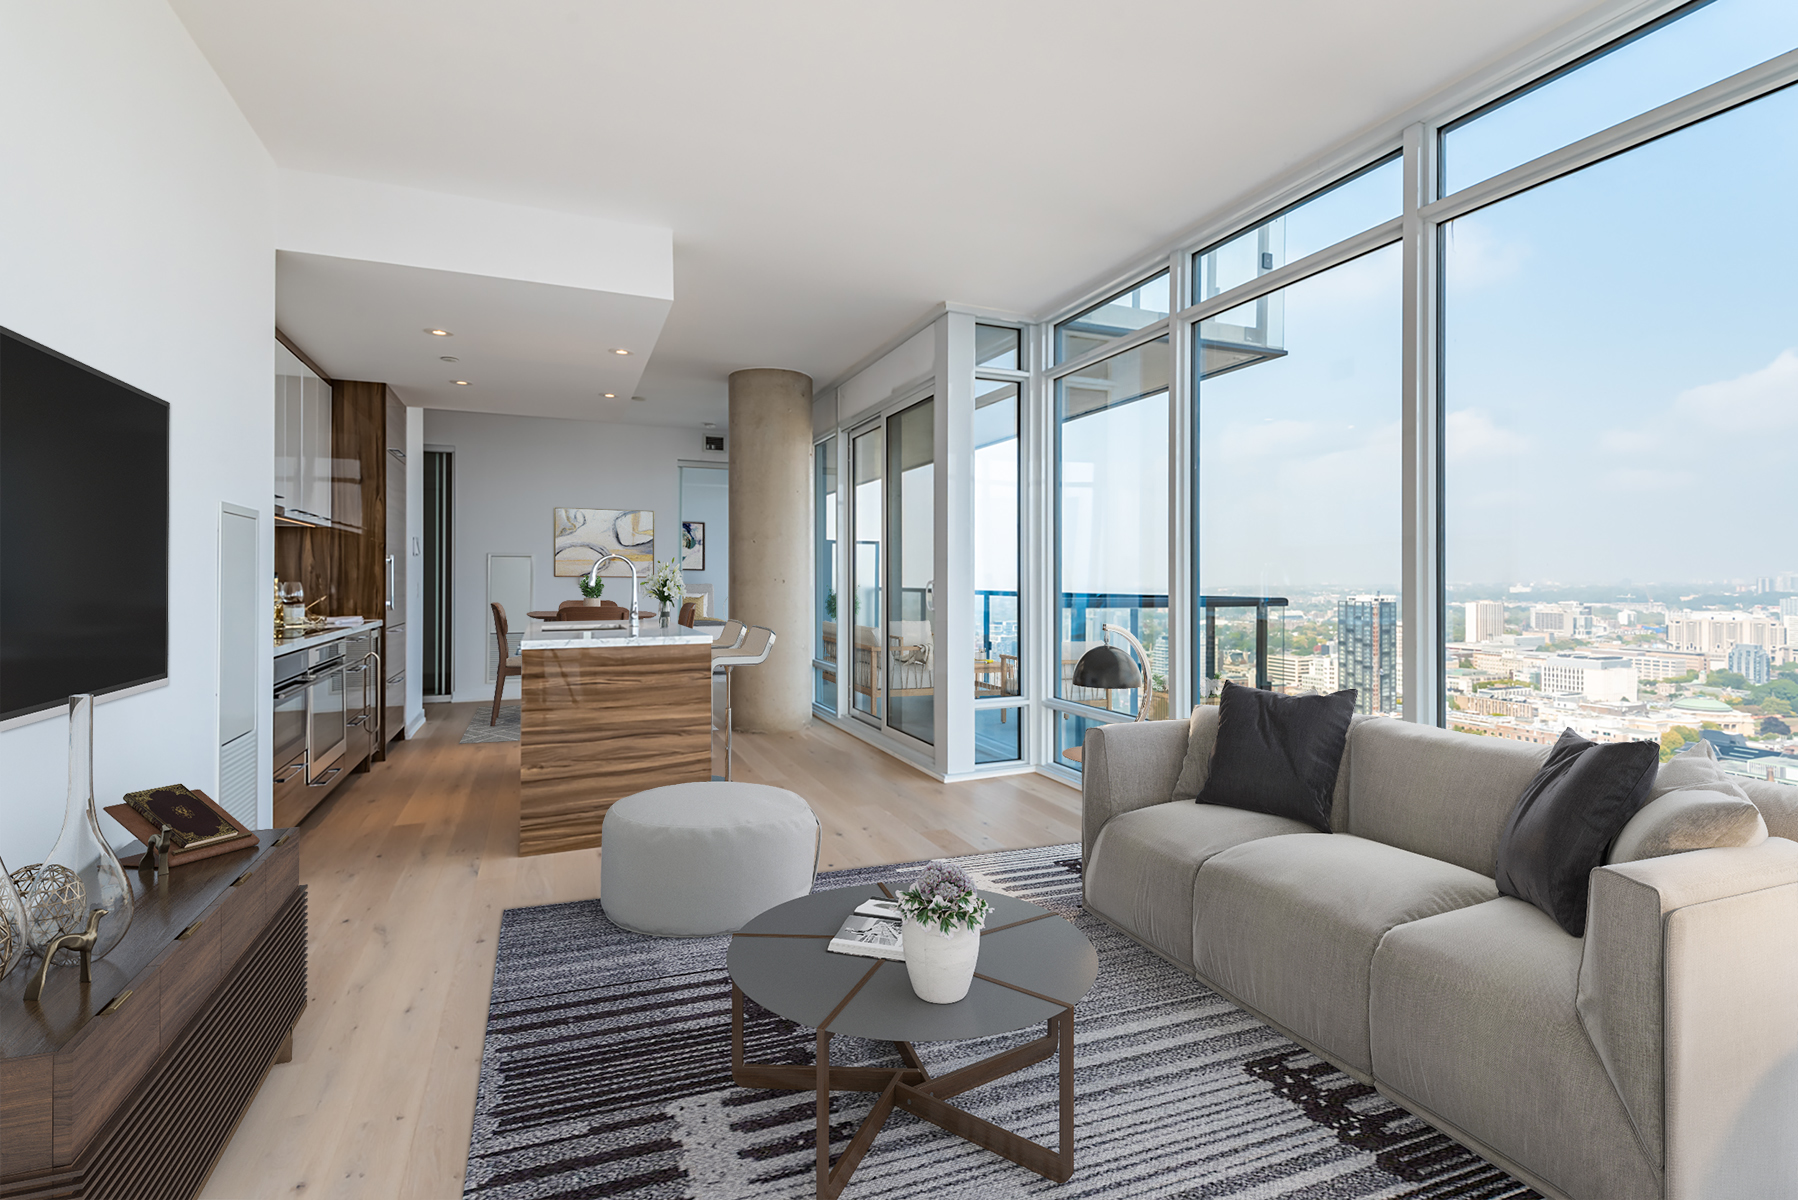 Condo with floor-to-ceiling windows and view of Toronto.